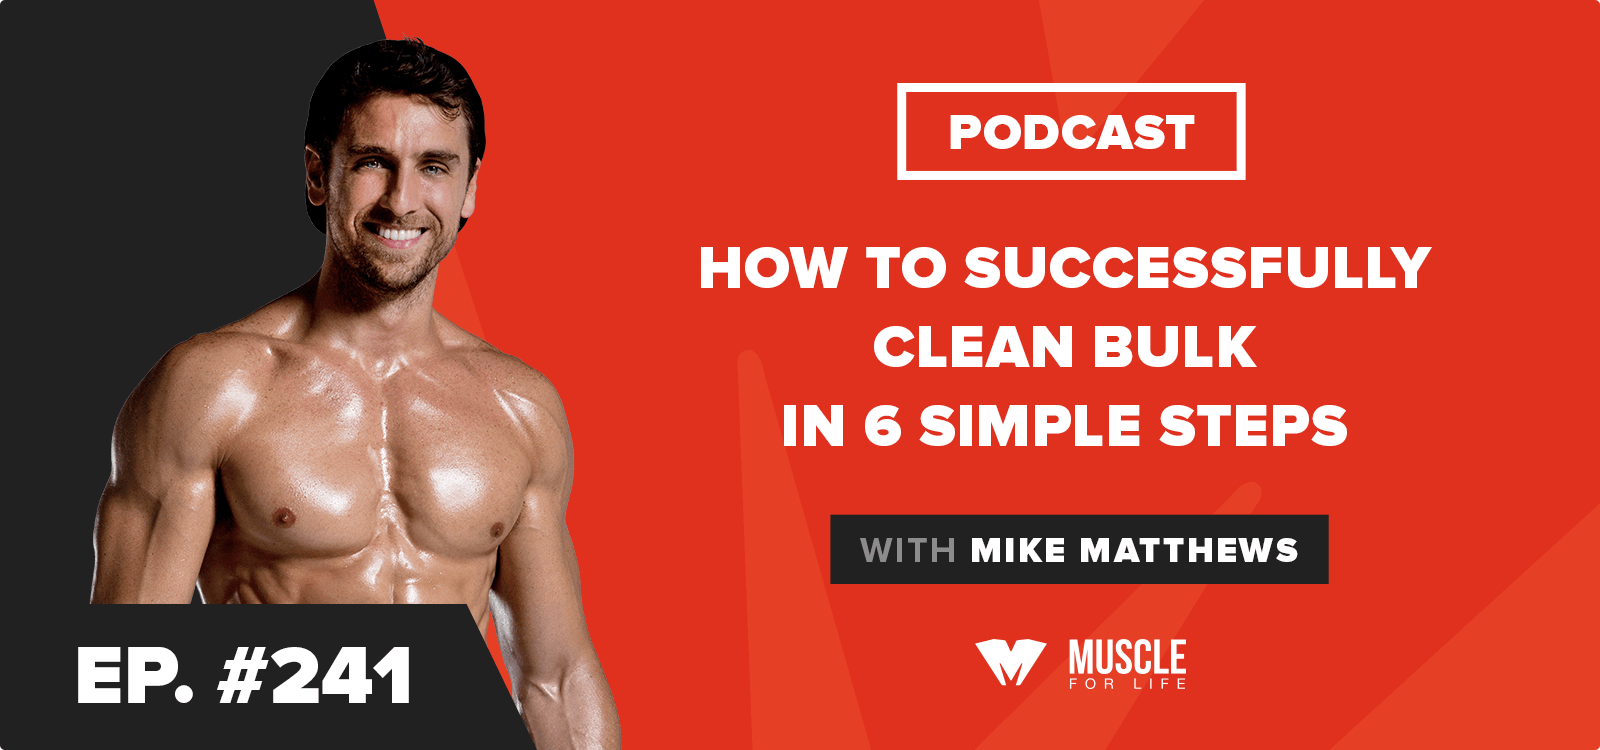 How to Successfully Clean Bulk In 6 Simple Steps - Legion Athletics